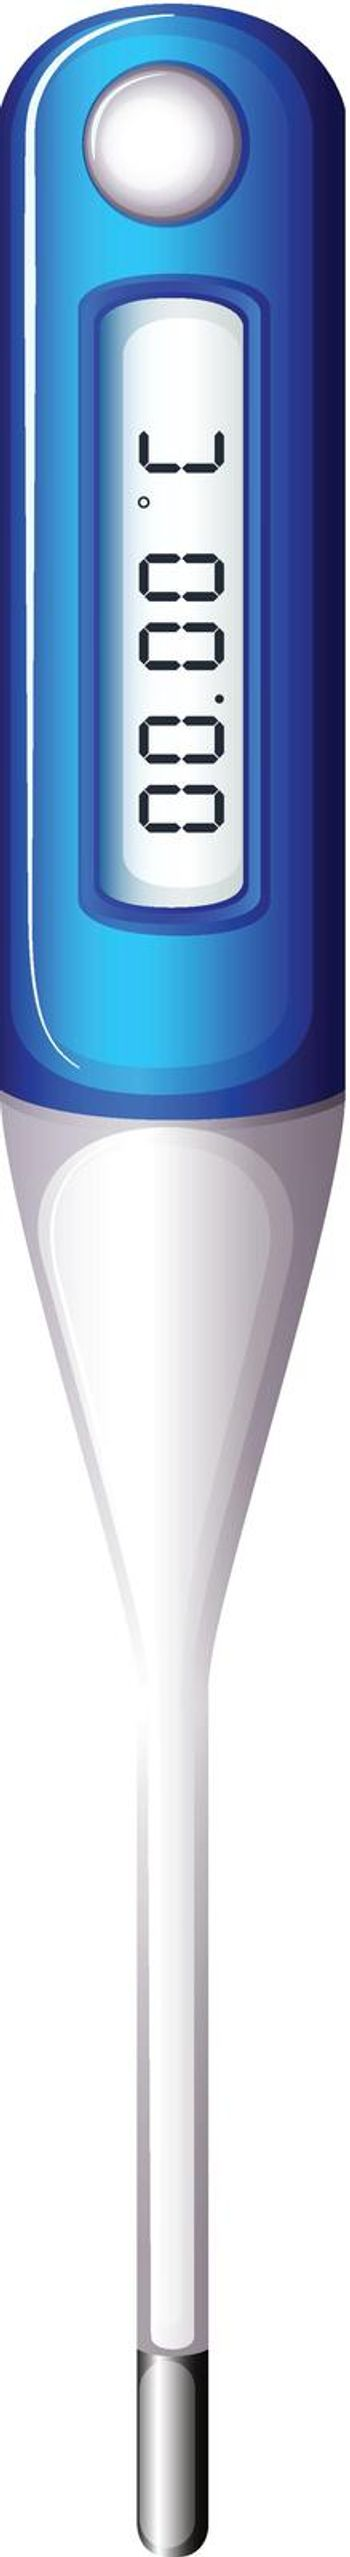 Illustration of a thermometer on a white background